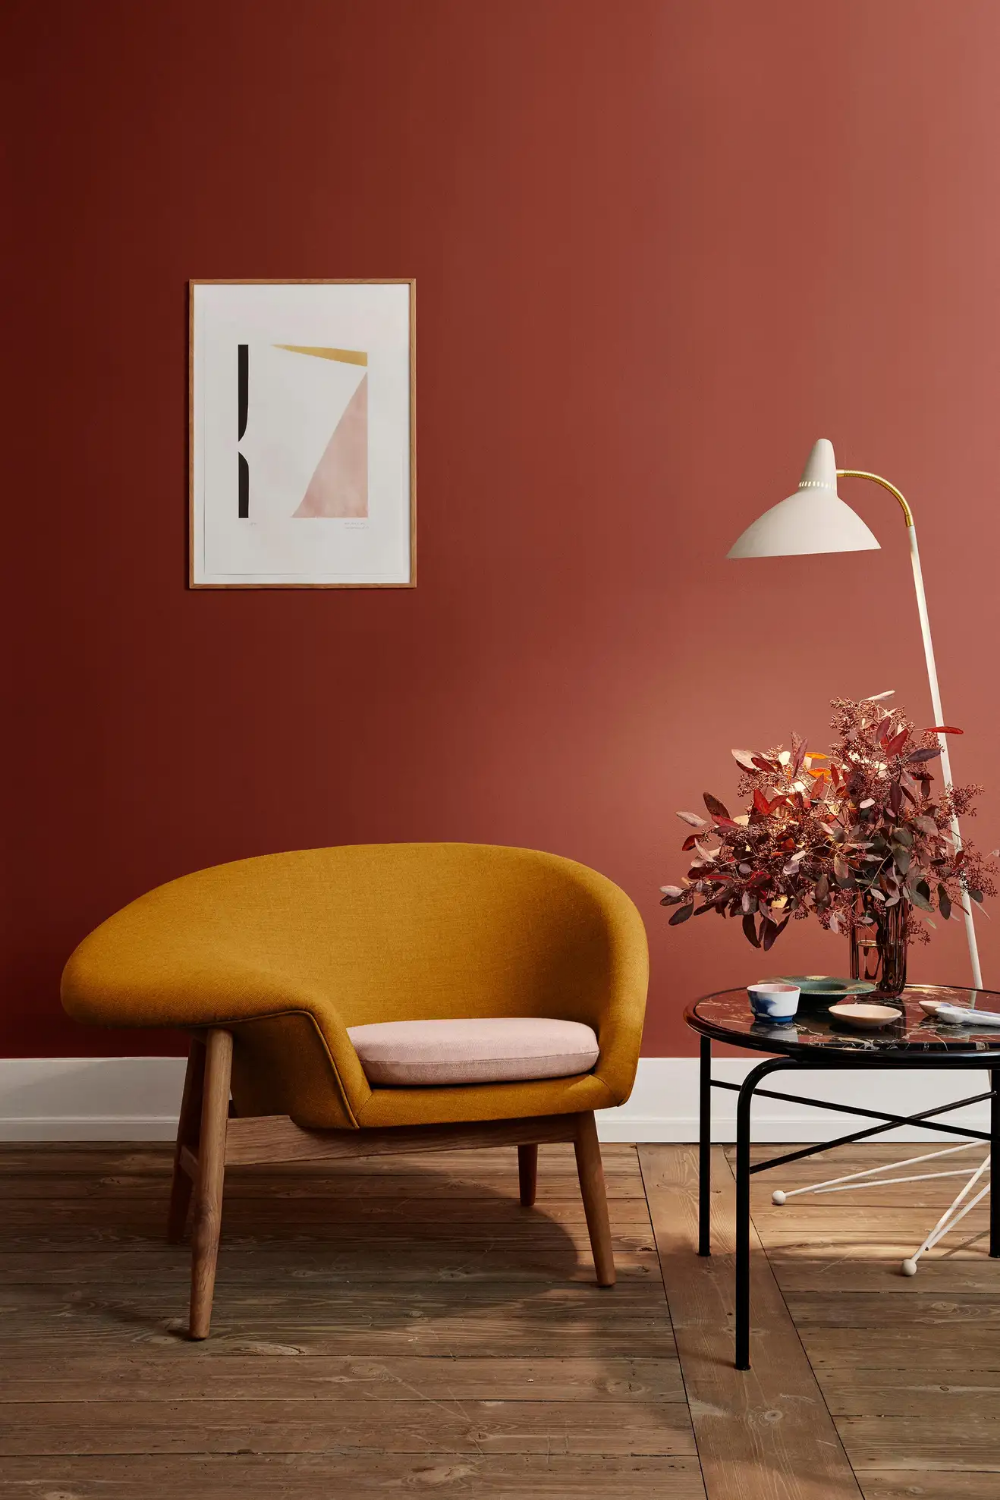 Fried Egg Two-Tone Chair, by Hans Olsen from Warm Nordic